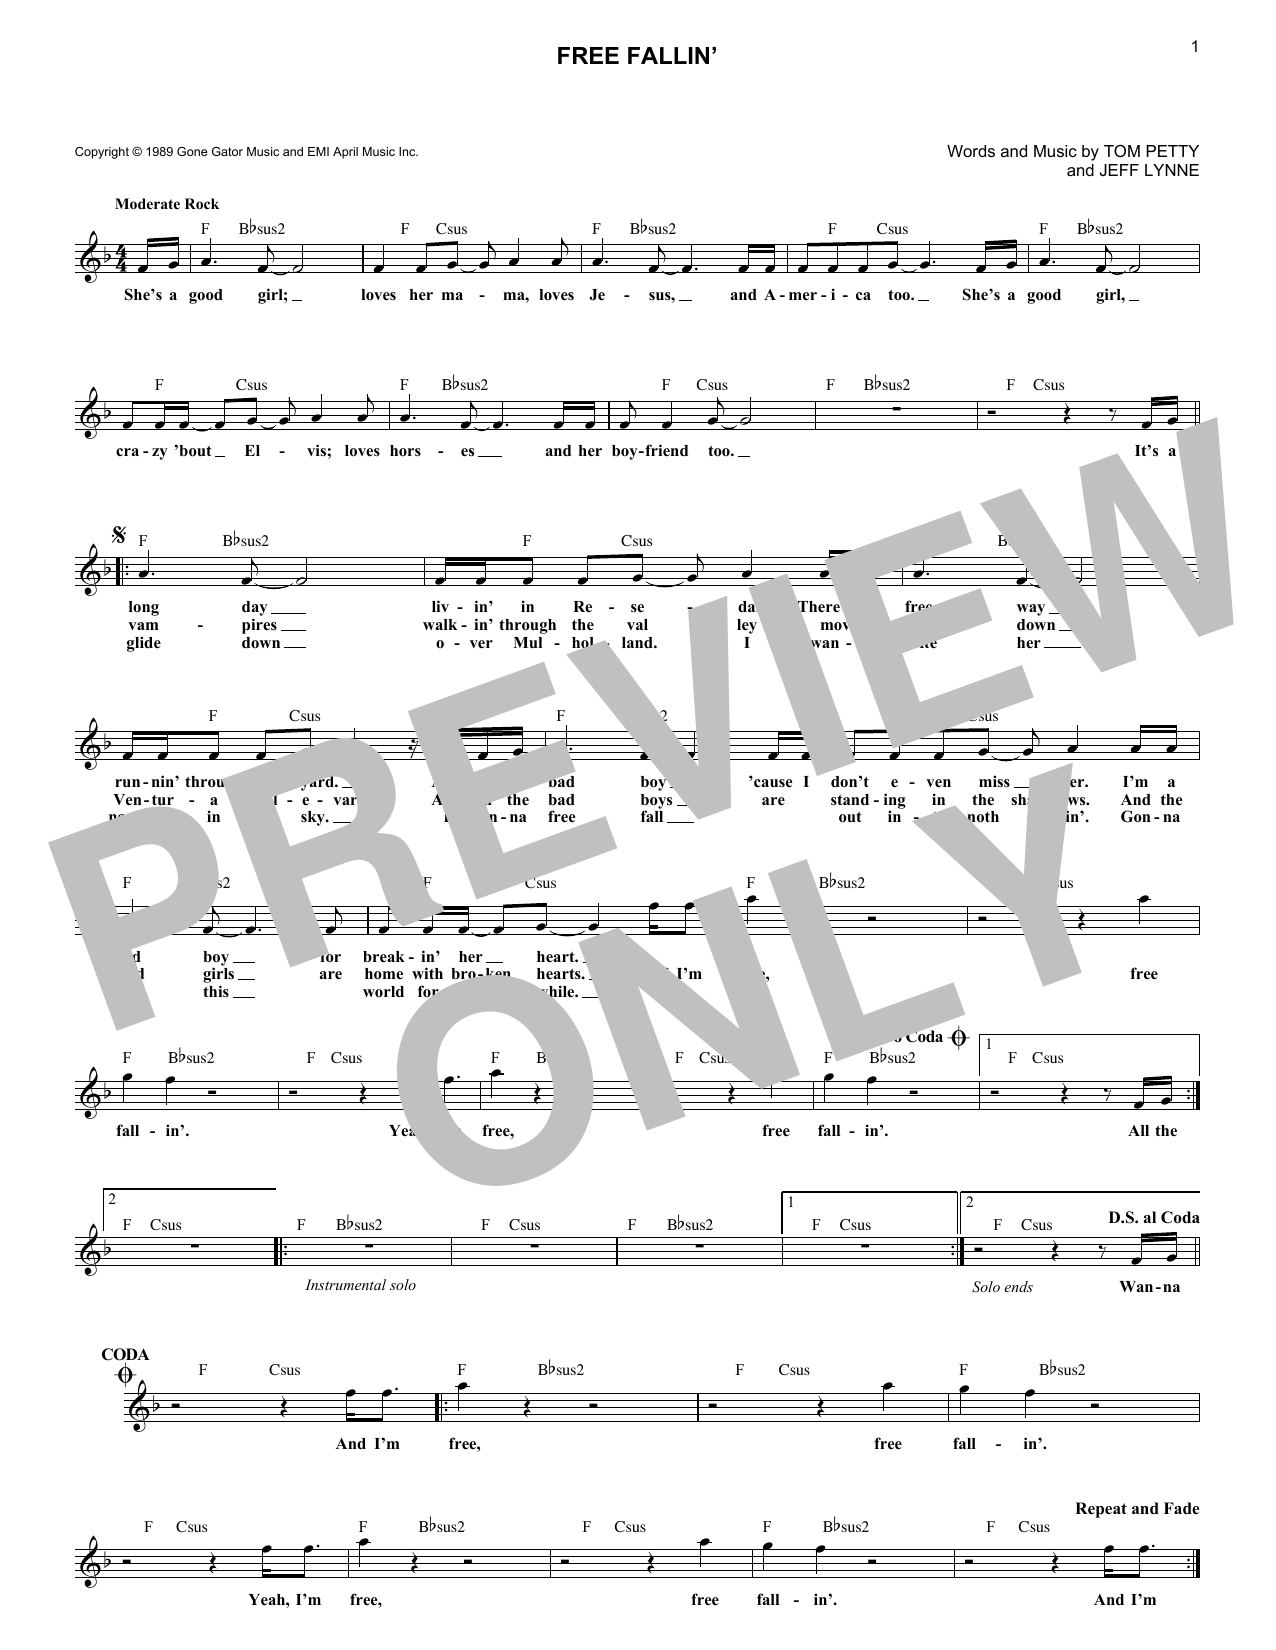 Free Fallin Chords By Tom Petty Melody Line Lyrics Chords 184647